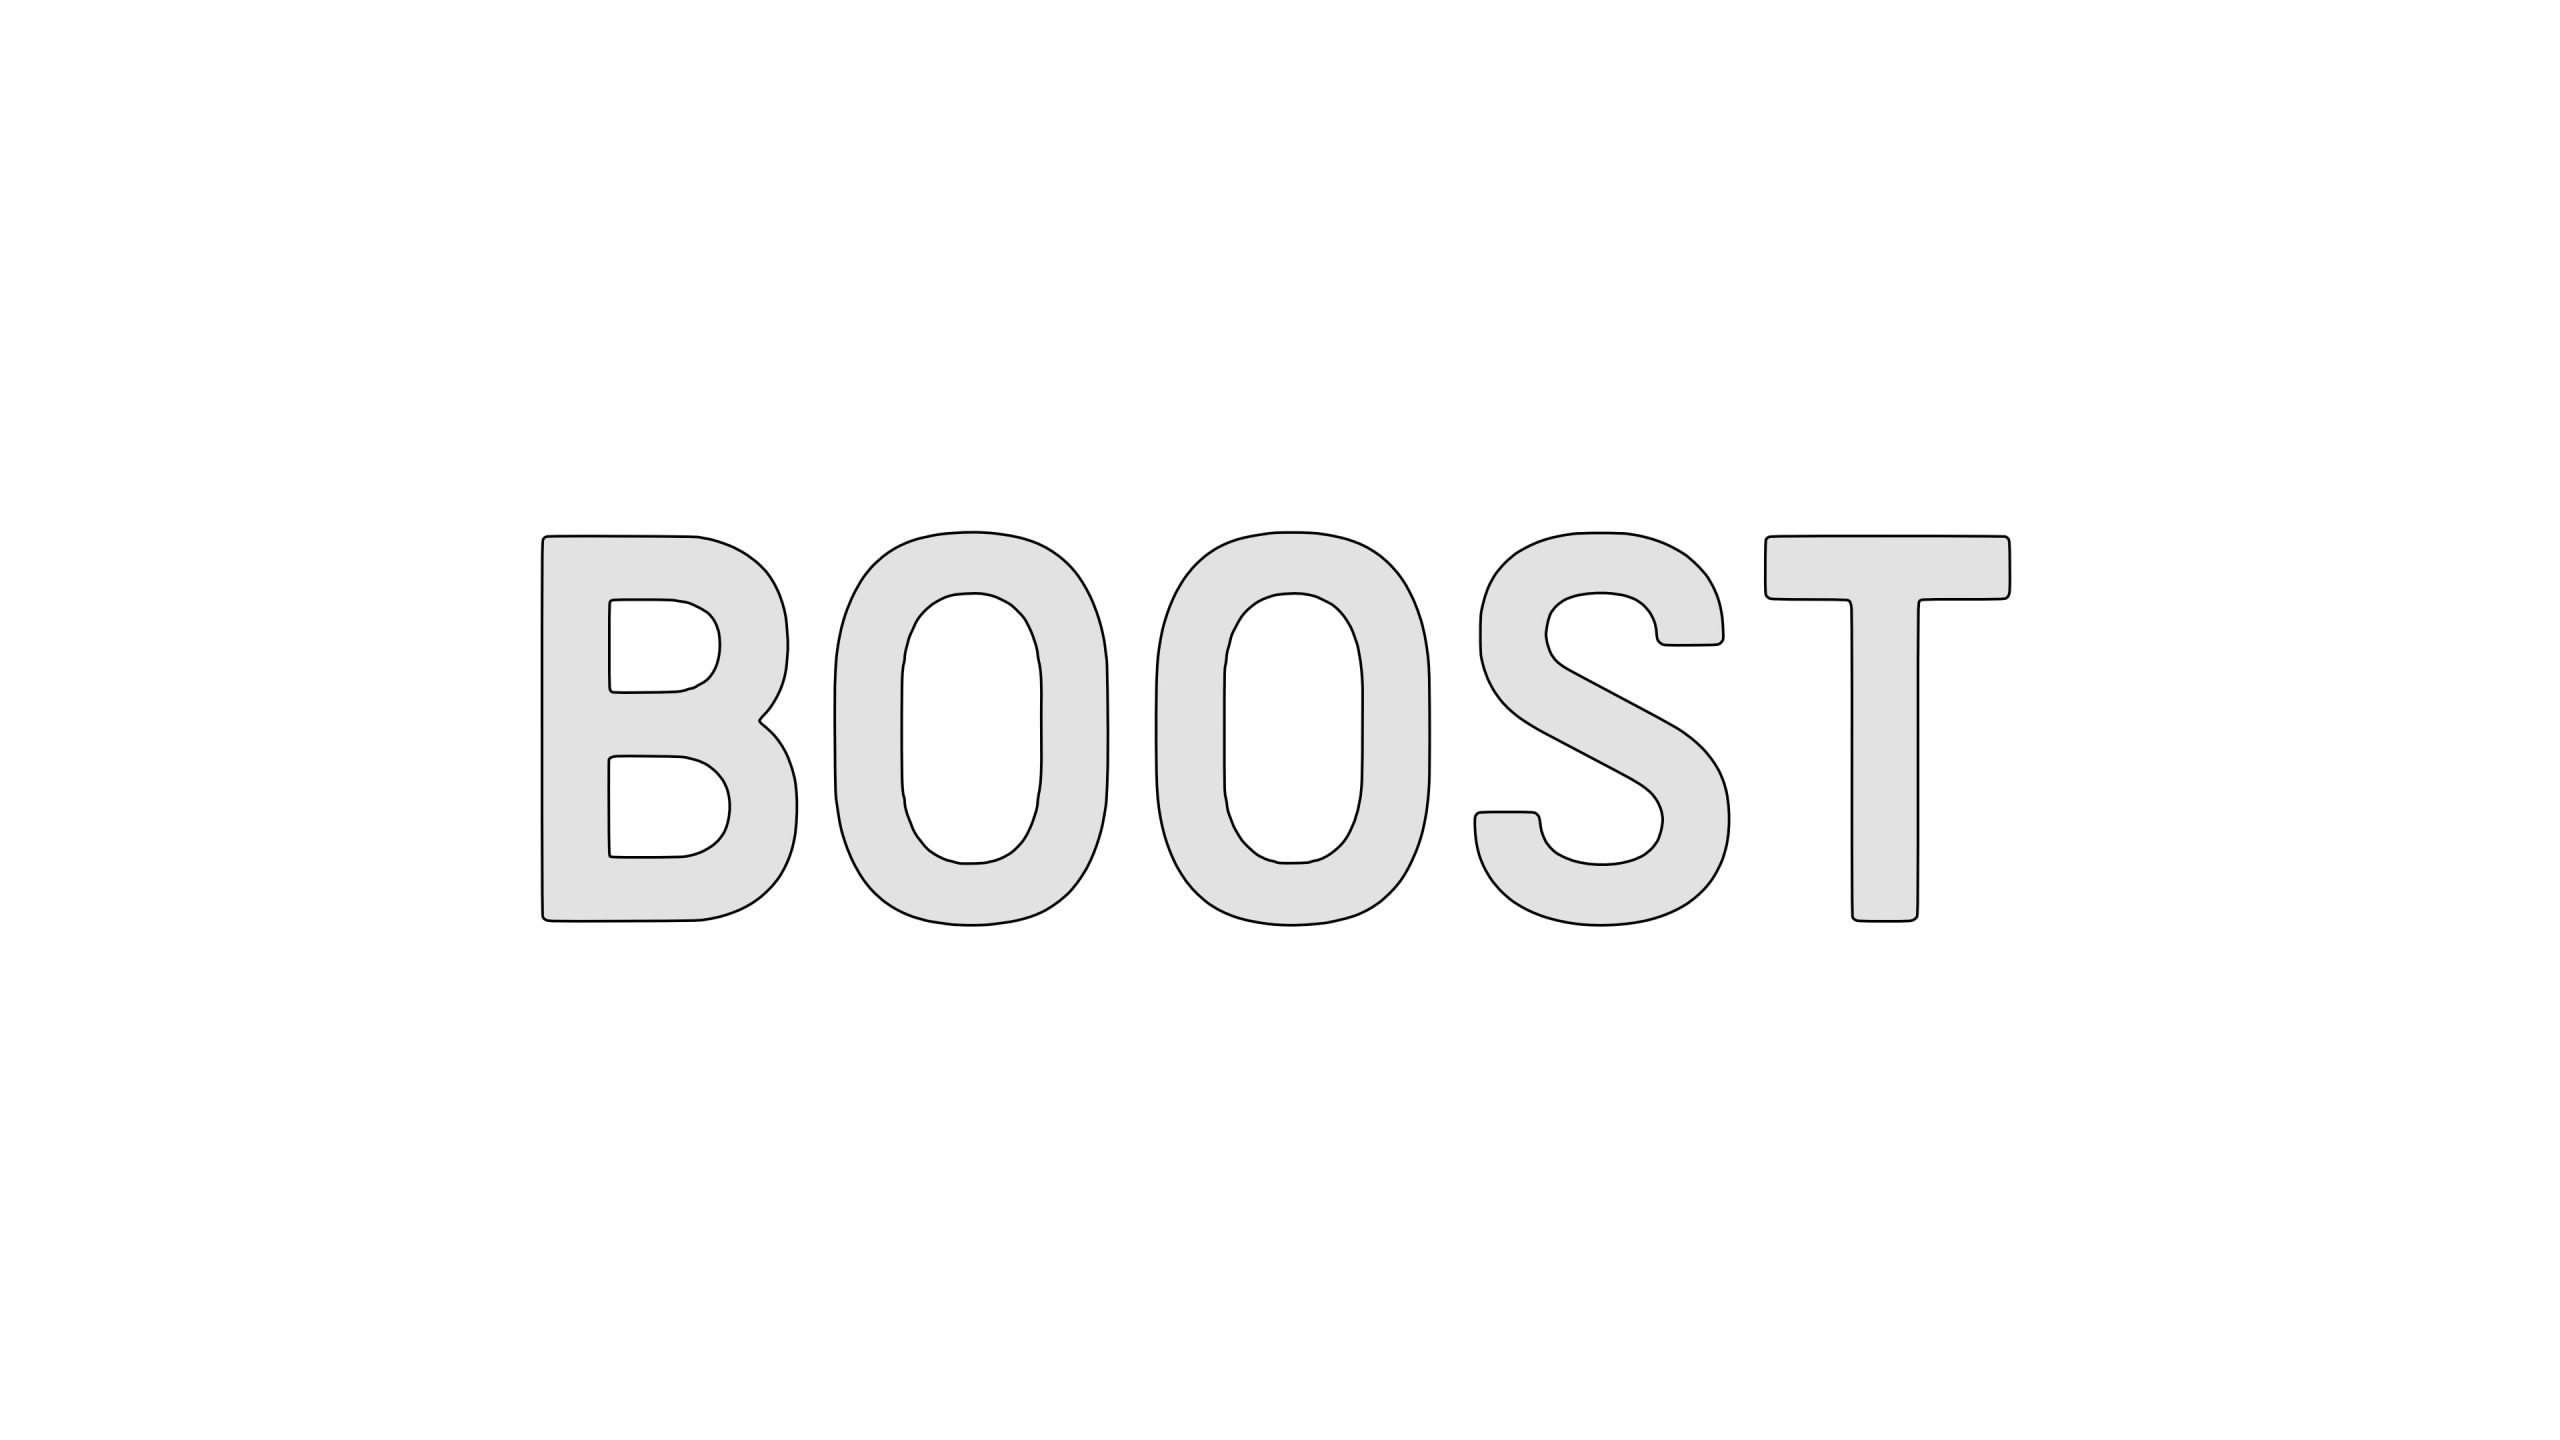 ADIDAS-BOOST-font-outline